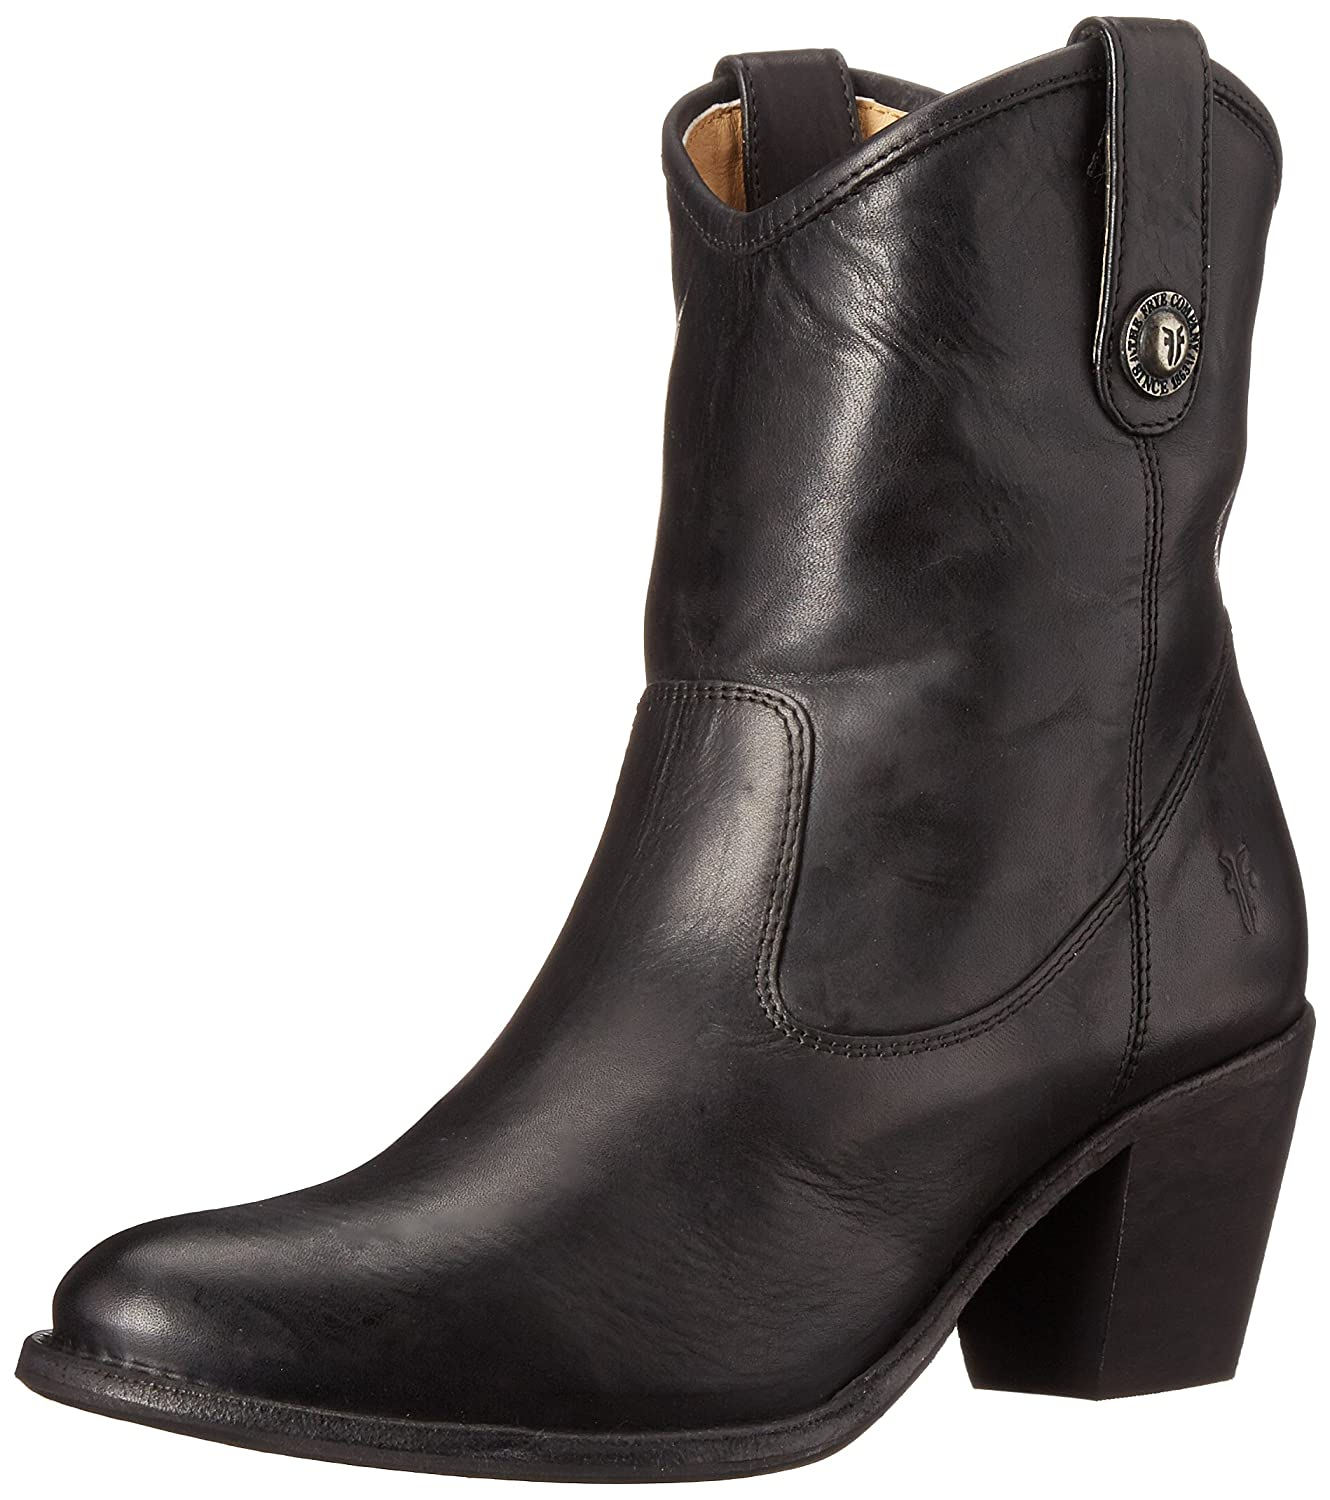 FRYE Women's Jackie Button Short Boot B00TPULOXI 7 B(M) US|Black - Washed Antique Pull Up Leather-76593